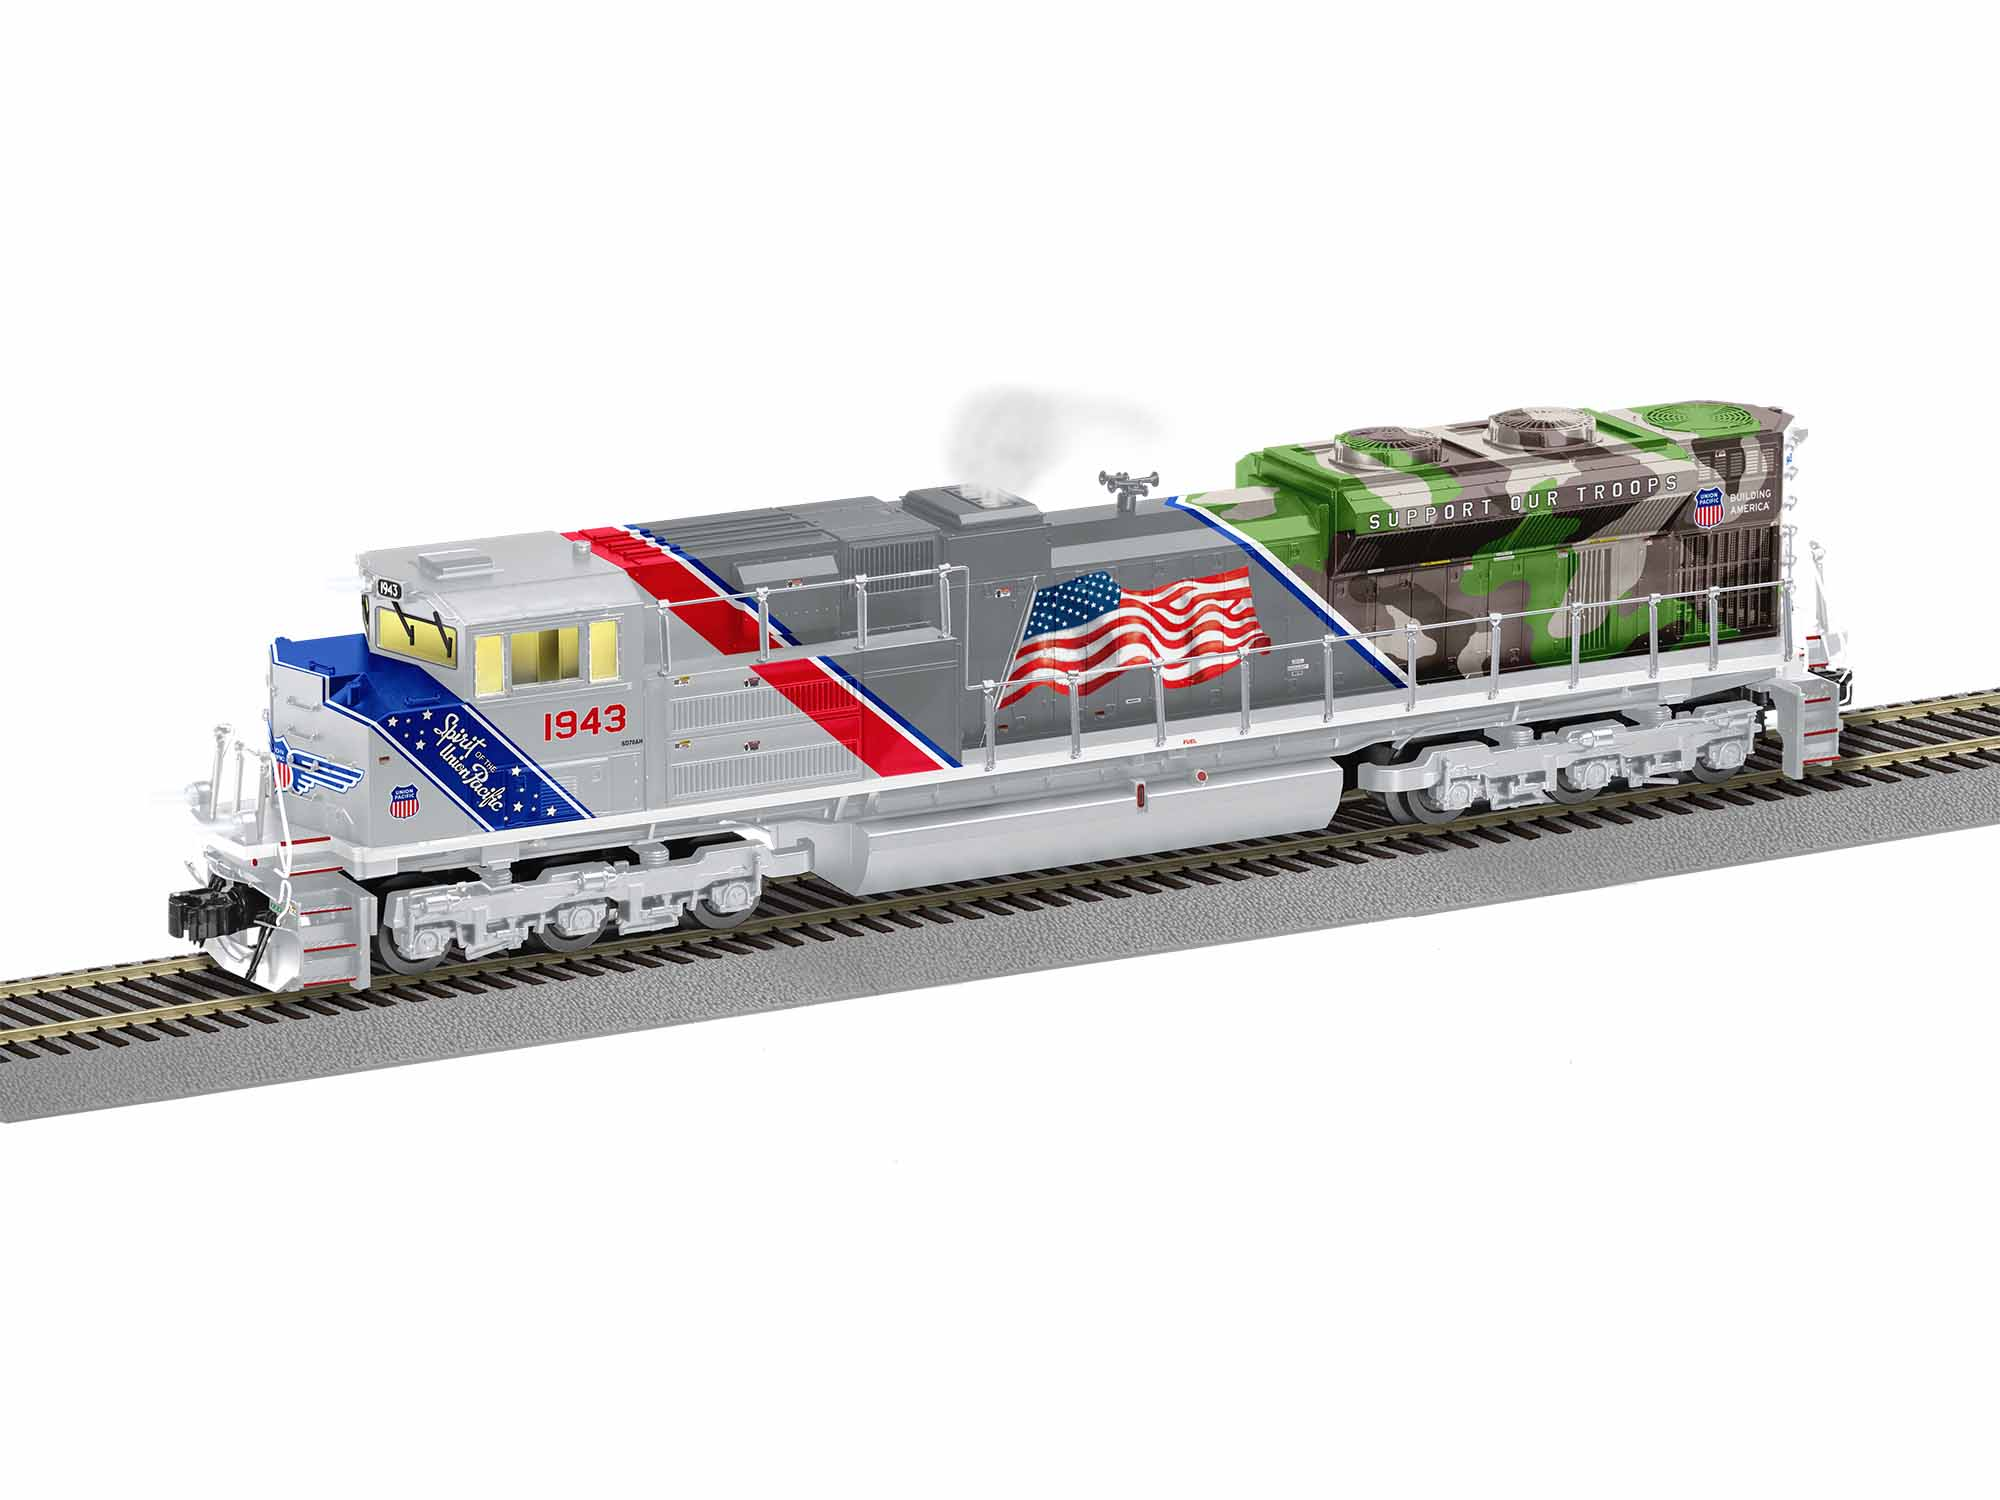 LNL1921130 Lionel S AF SD70ACe w/Legacy, UP/Spirit #1943 434-1921130